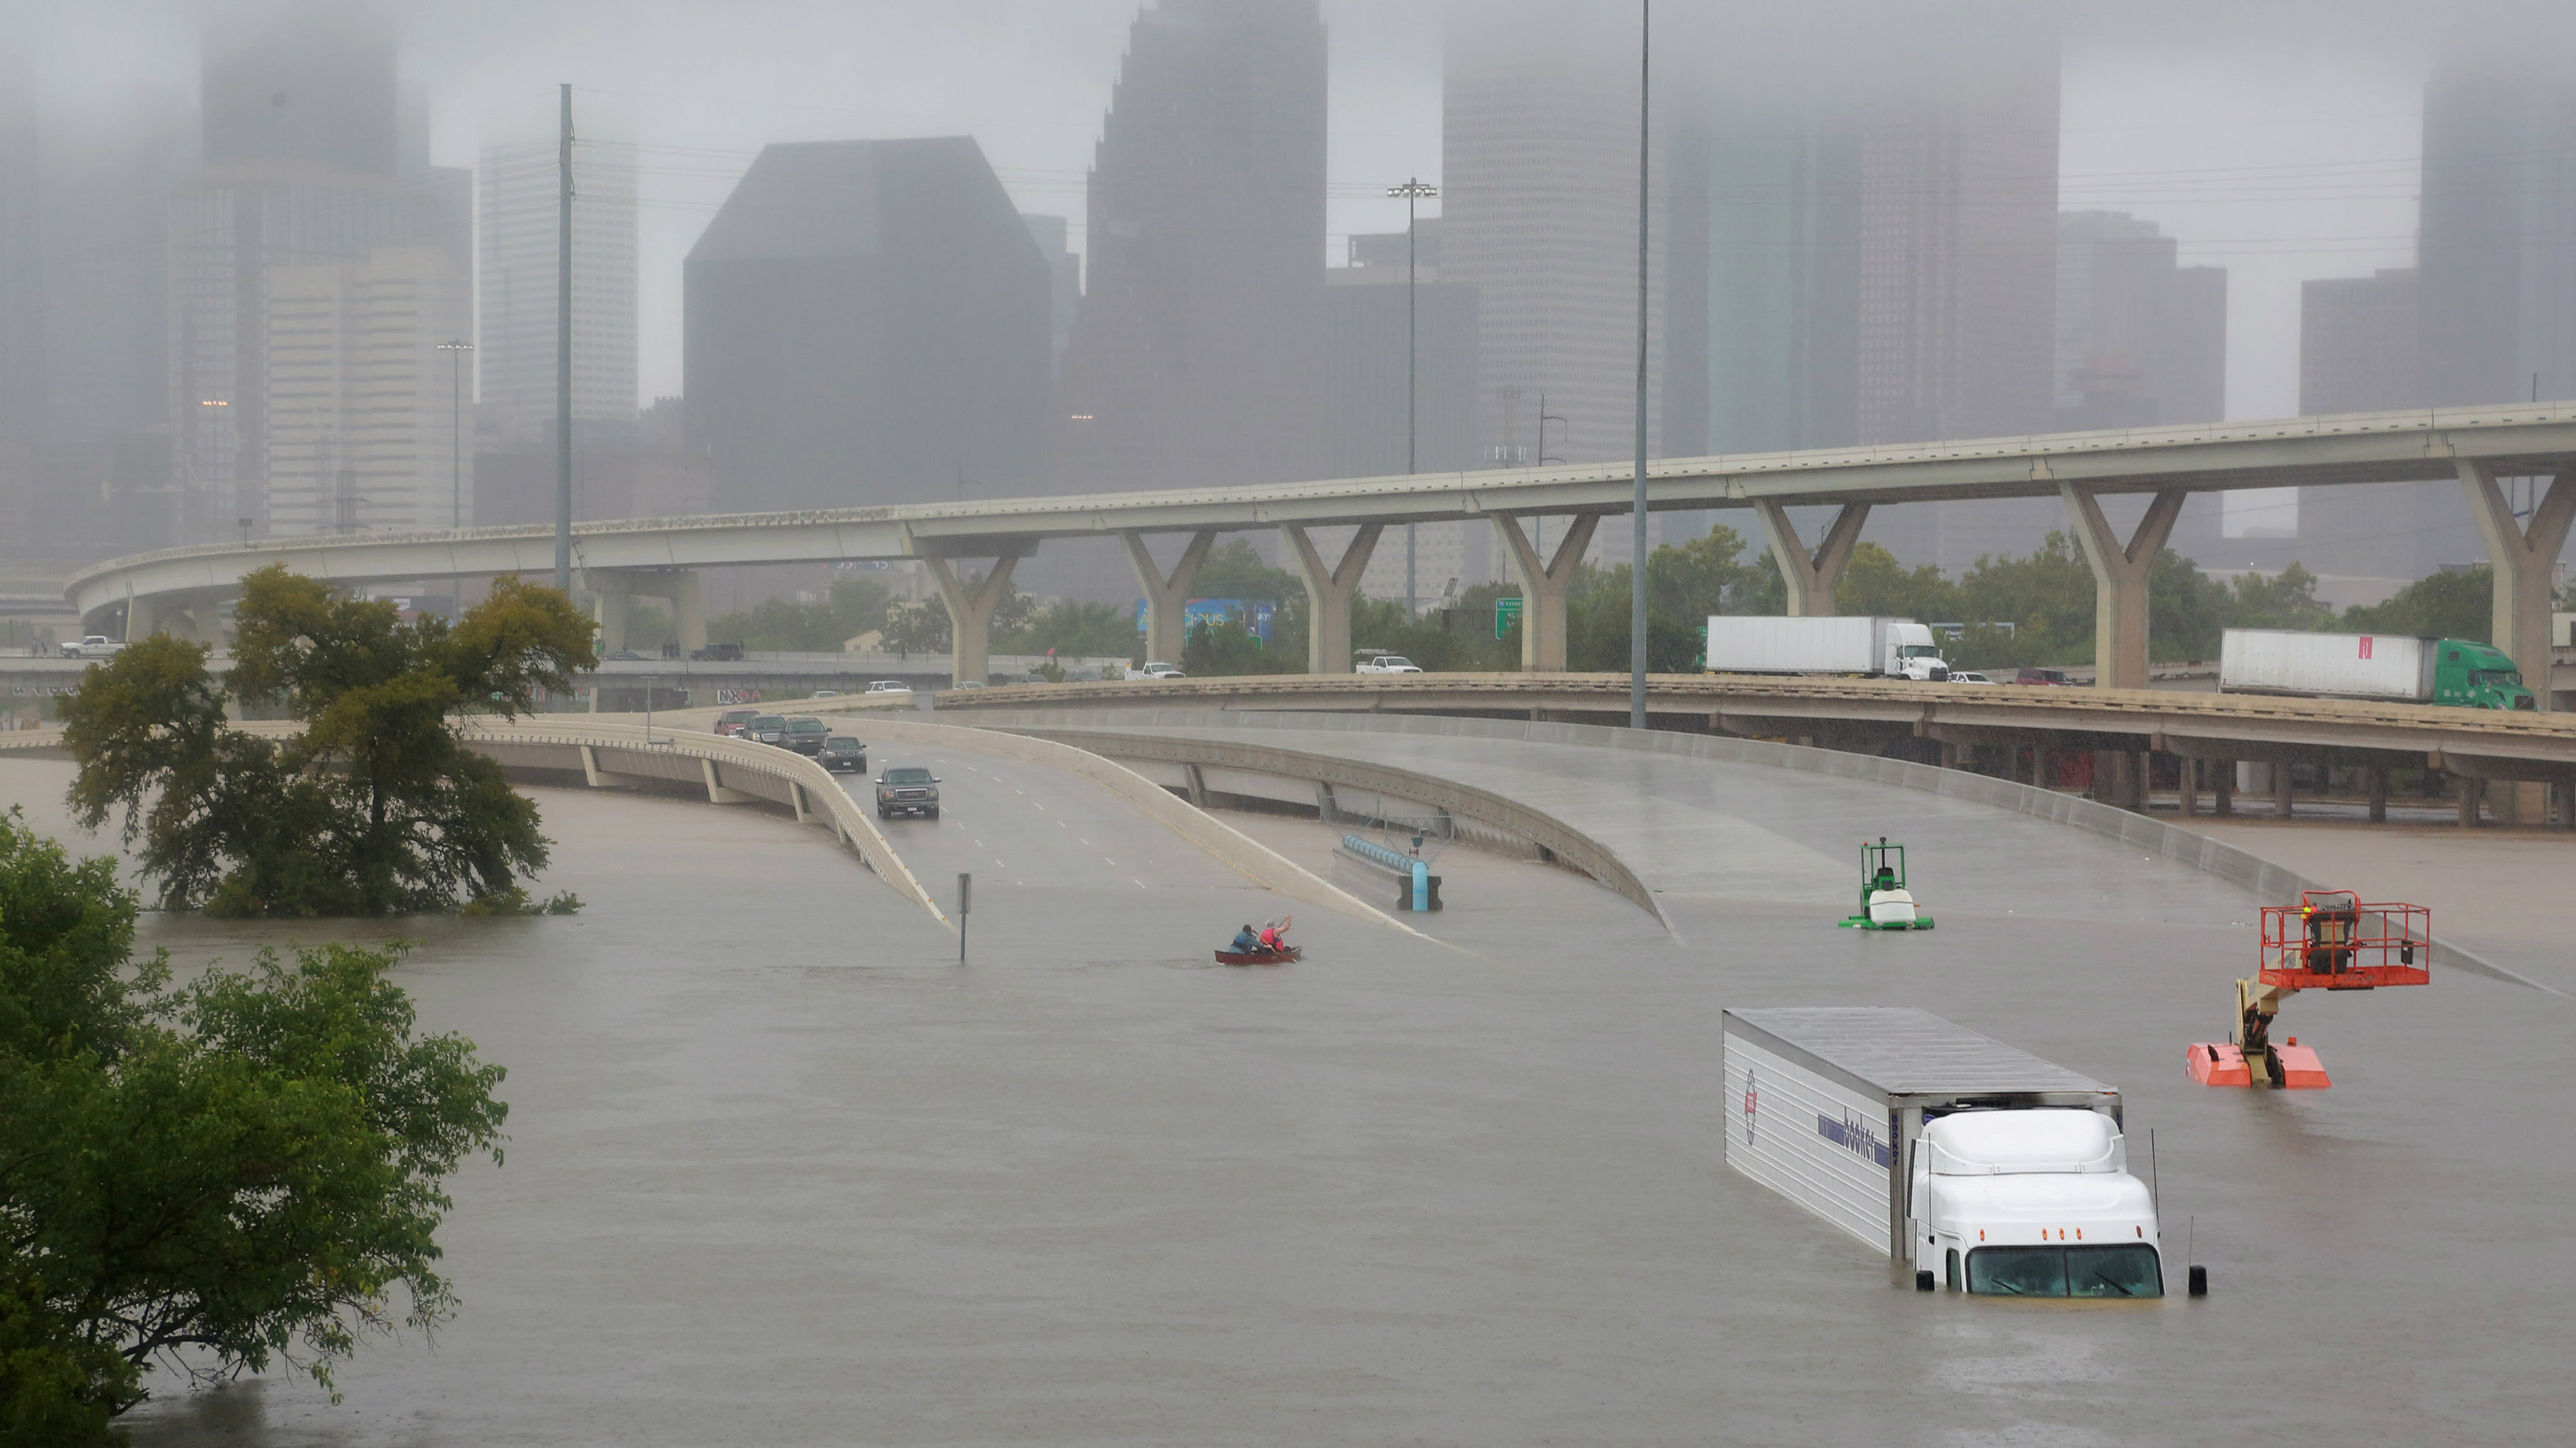 Interstate highway 45 is submerged from the effects of Hurricane Harvey in Texas